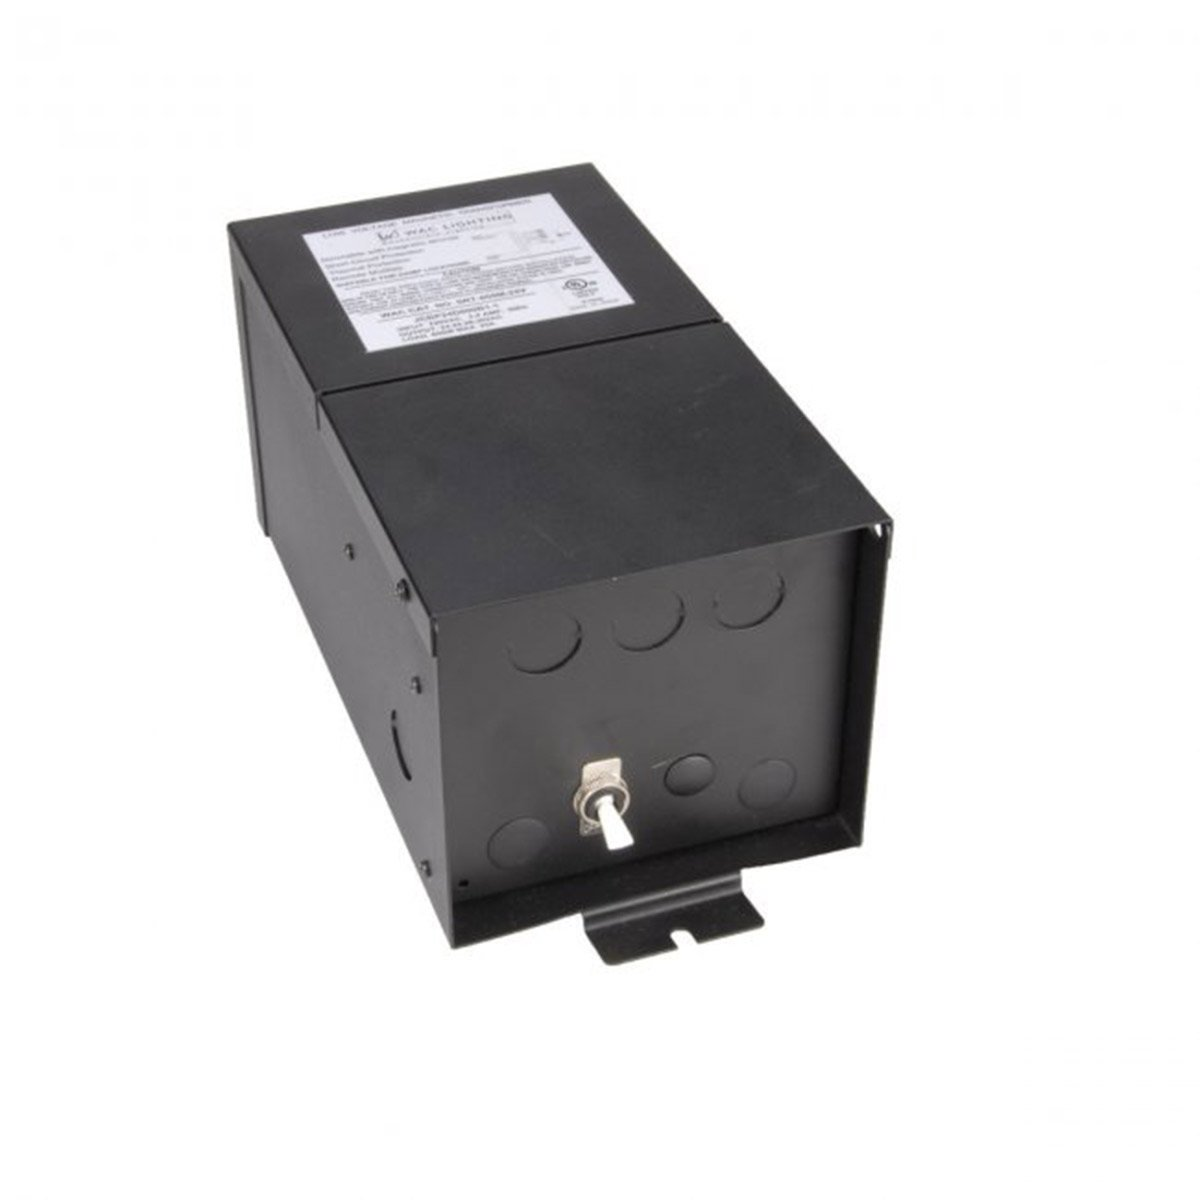 WAC Lighting SRT600M12V Remote Magnetic Transformer 600W, 600W Output 12V with Boost Tap by WAC Lighting